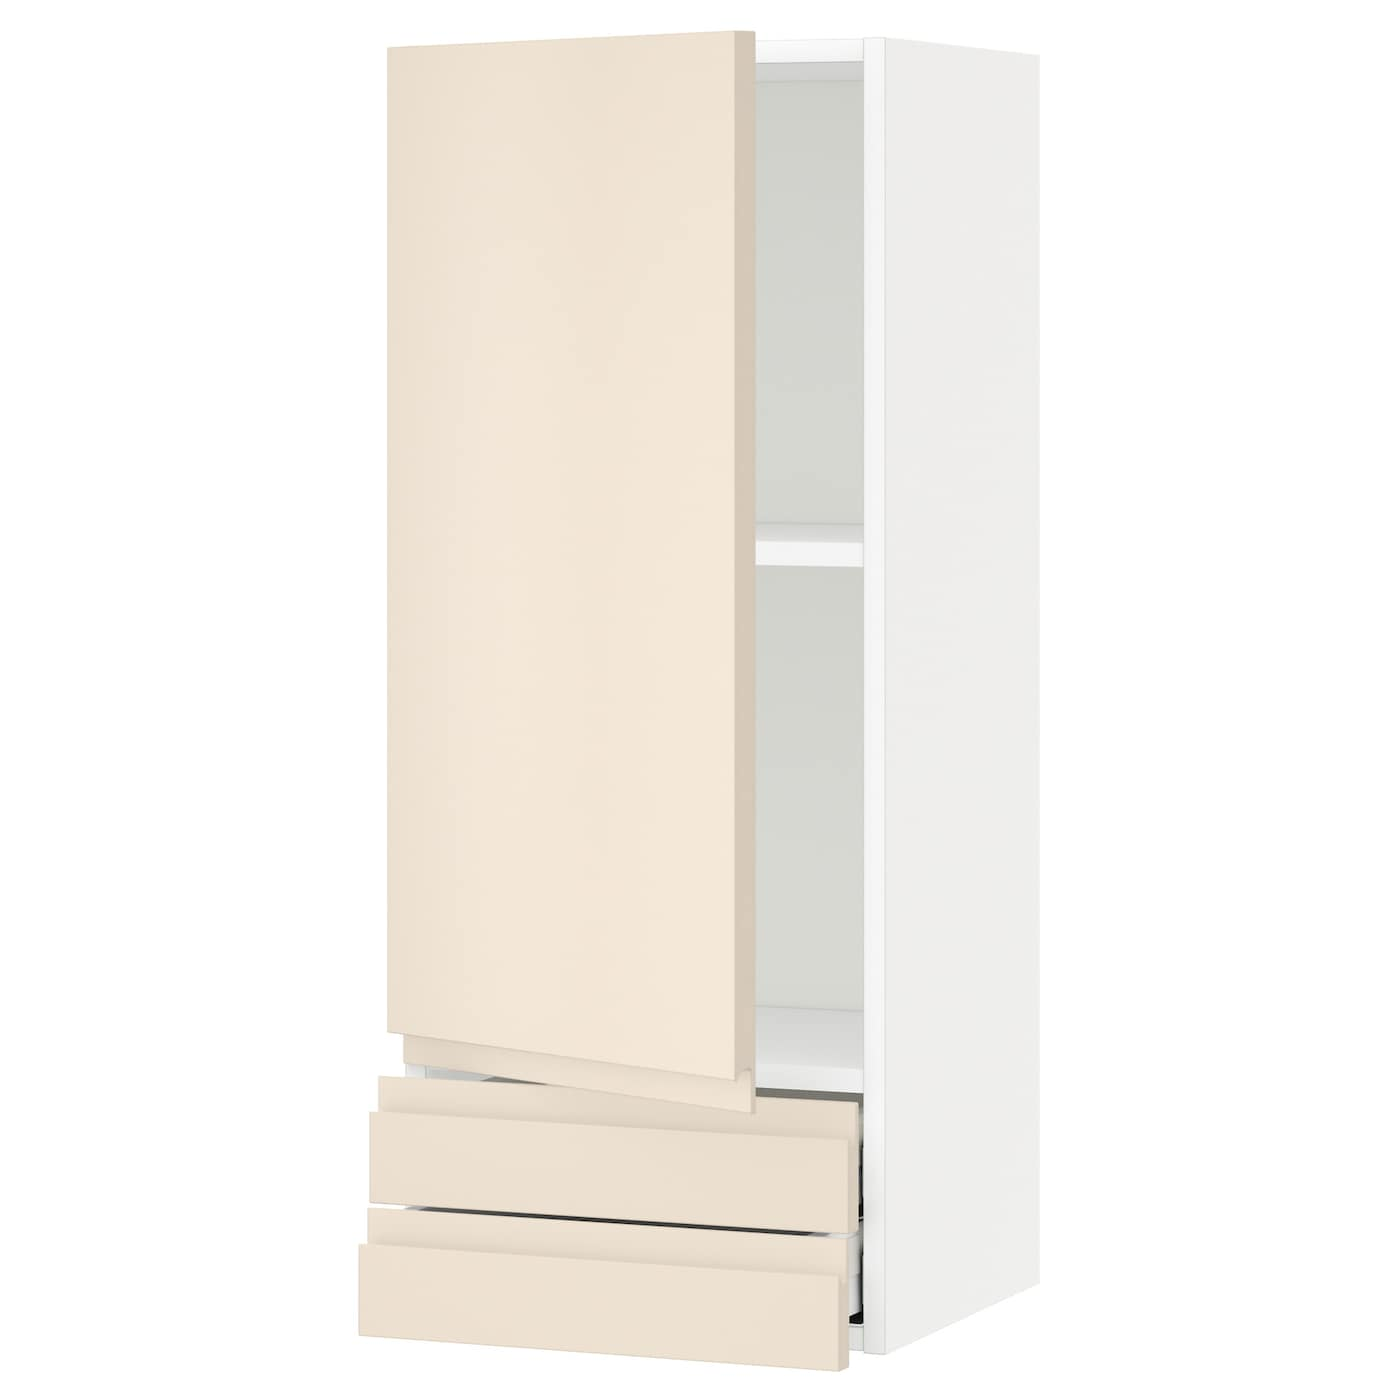 Metod Wall Cabinet With 2 Doors White Voxtorp High Gloss: METOD/MAXIMERA Wall Cabinet With Door/2 Drawers White